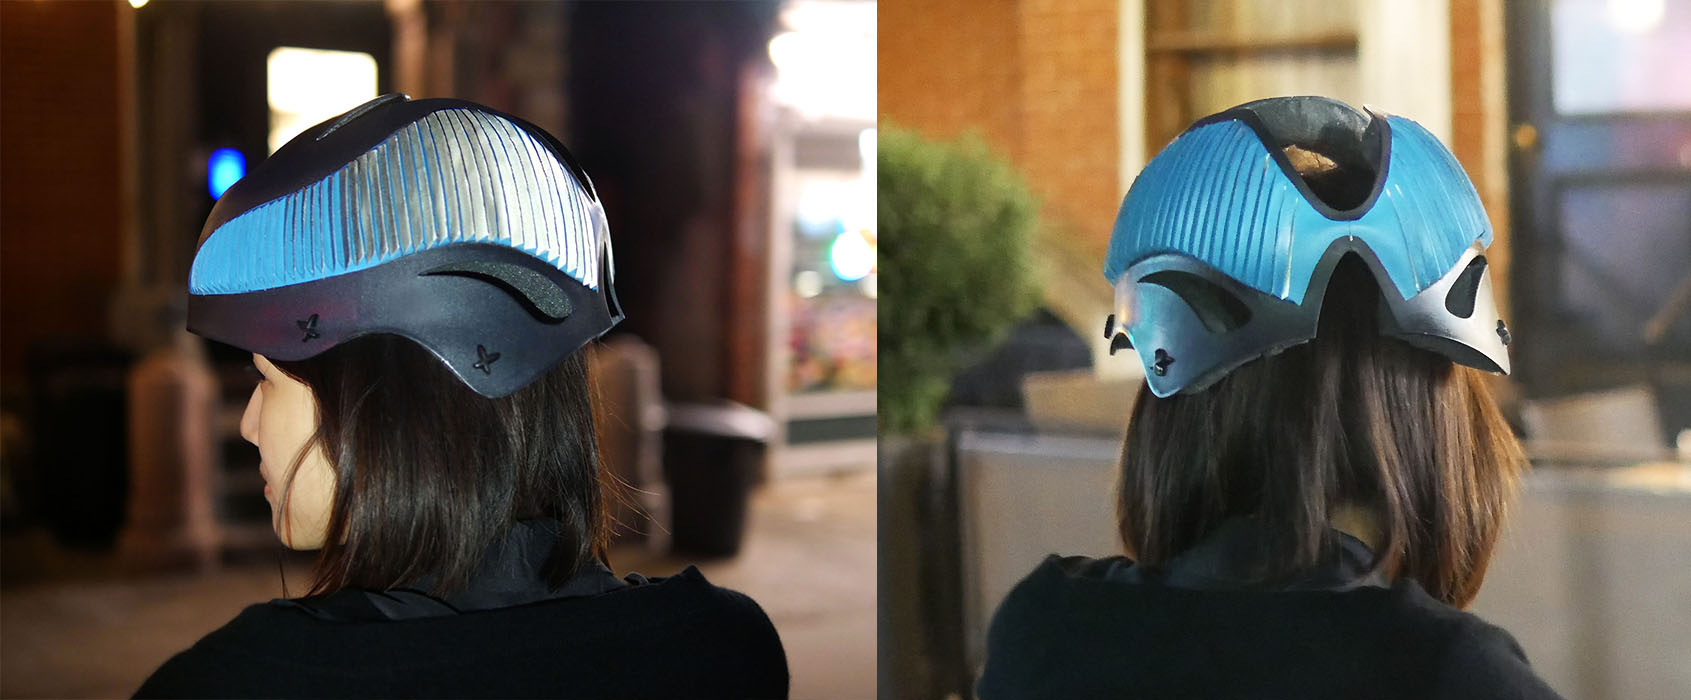 When a cyclist wants to make a turn, he/she will look behind to check whether or not it is safe. The changing angle will cause the reflective material on the helmet to detect the lights from the headlight of the car behind. The helmet will spot automatically following the cyclist's head gesture without any additional power.